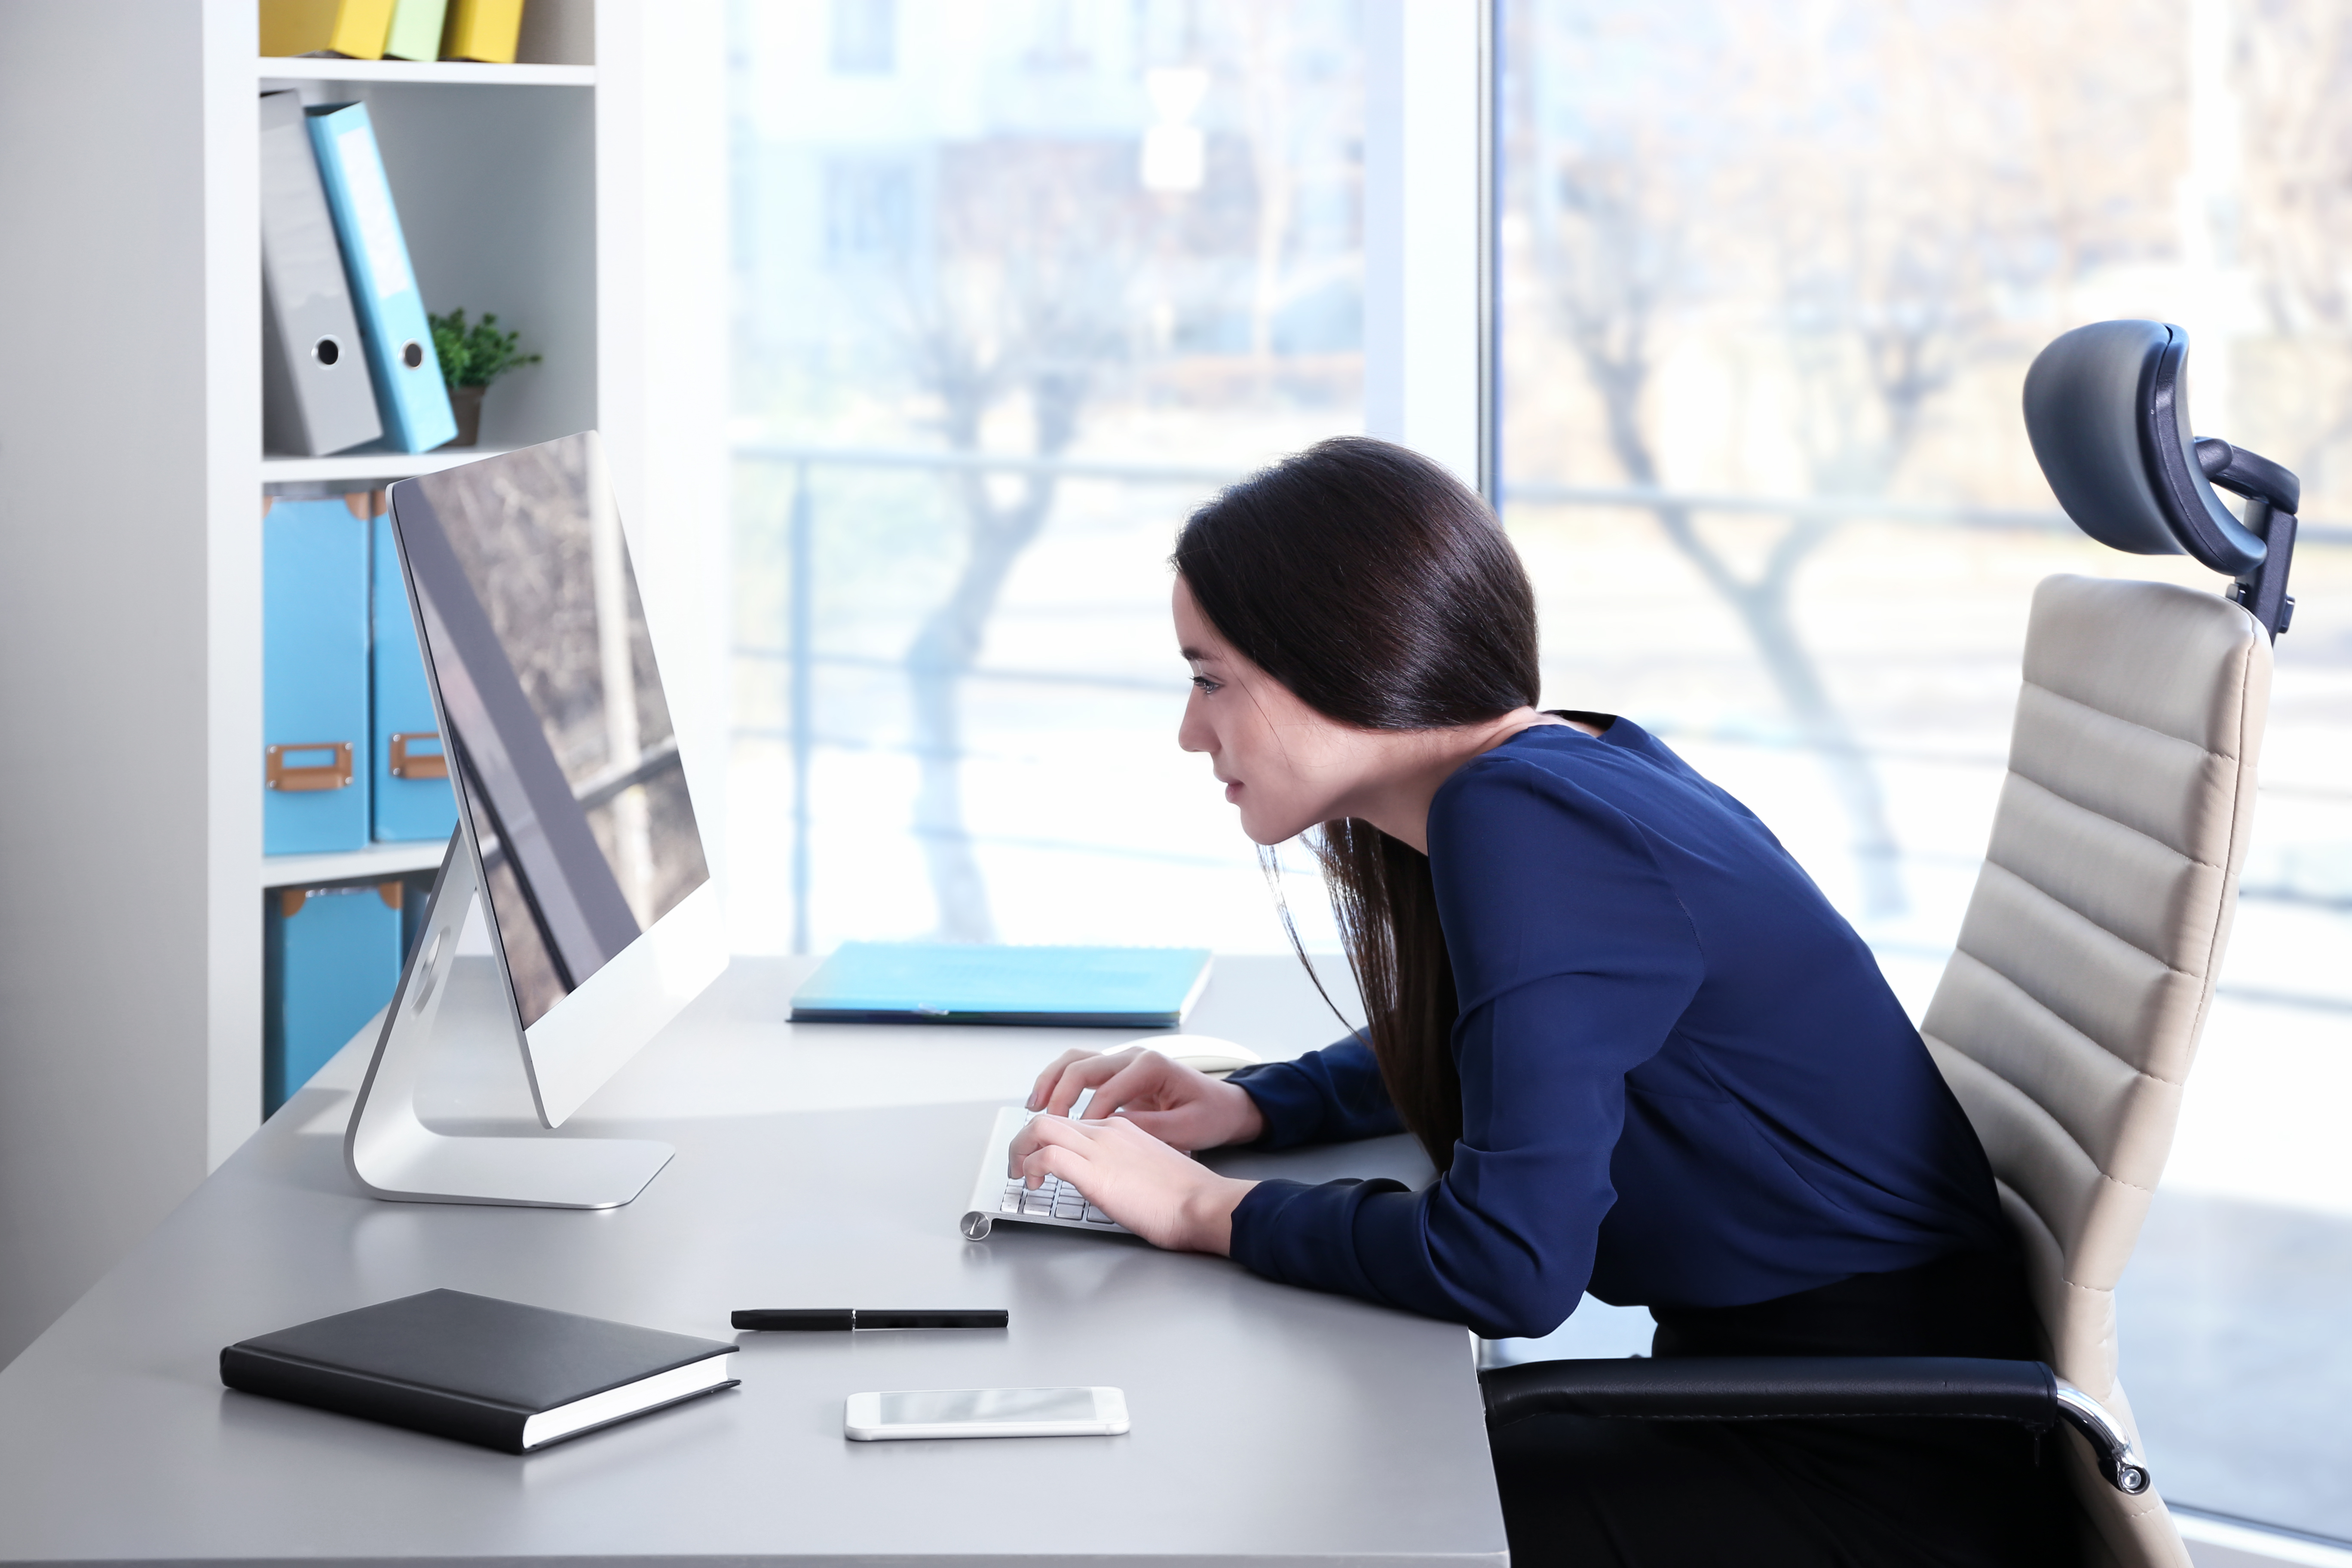 Confidence / Woman Sitting at Desk with Bad Posture